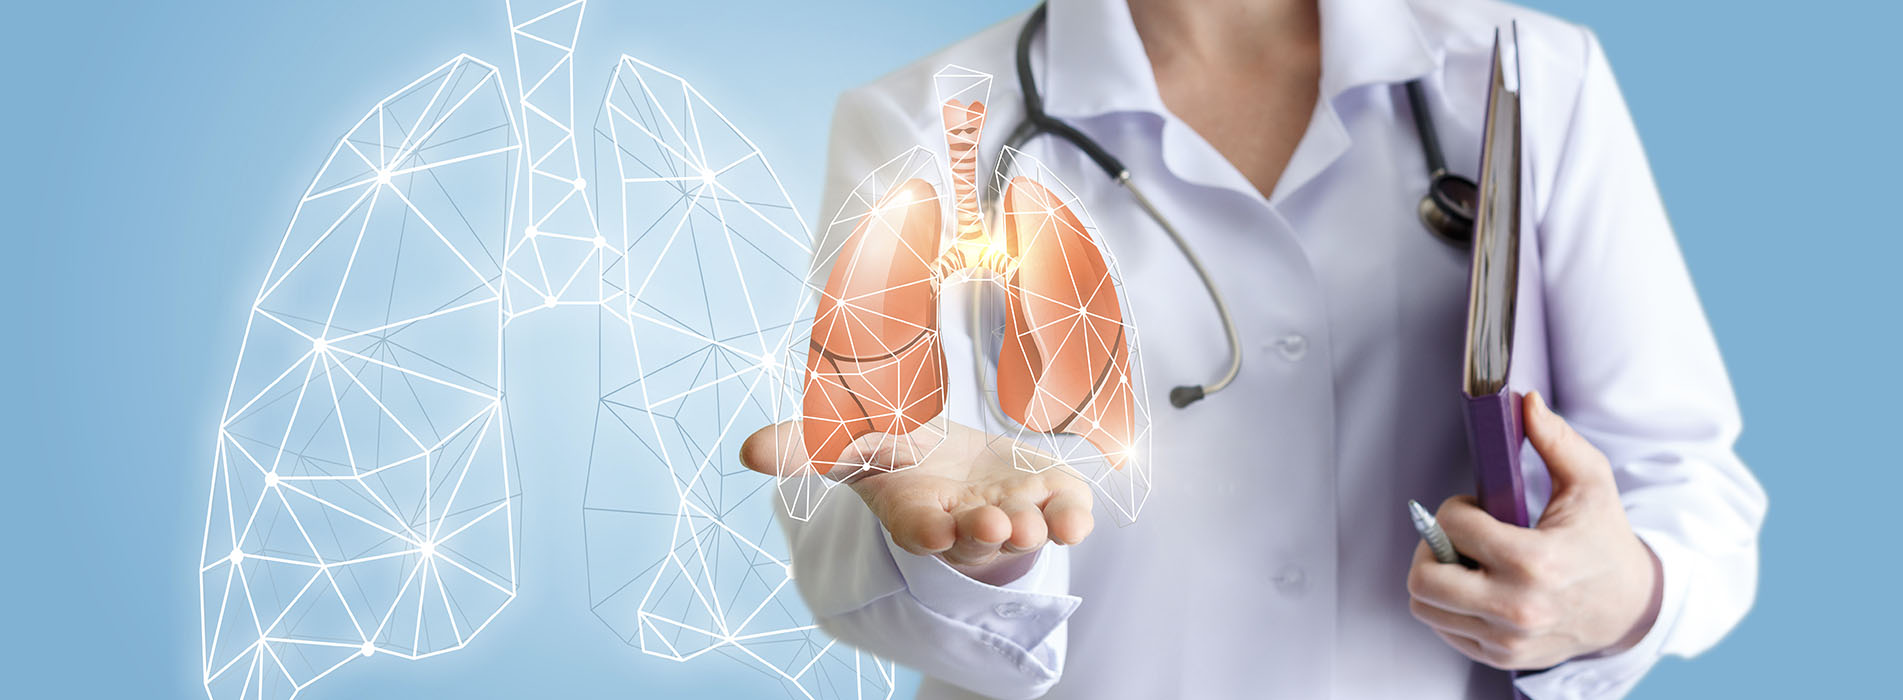 How Copd Patients Can Reduce The Symptoms Of Dry Mouth Pulmonary Education And Research Foundation